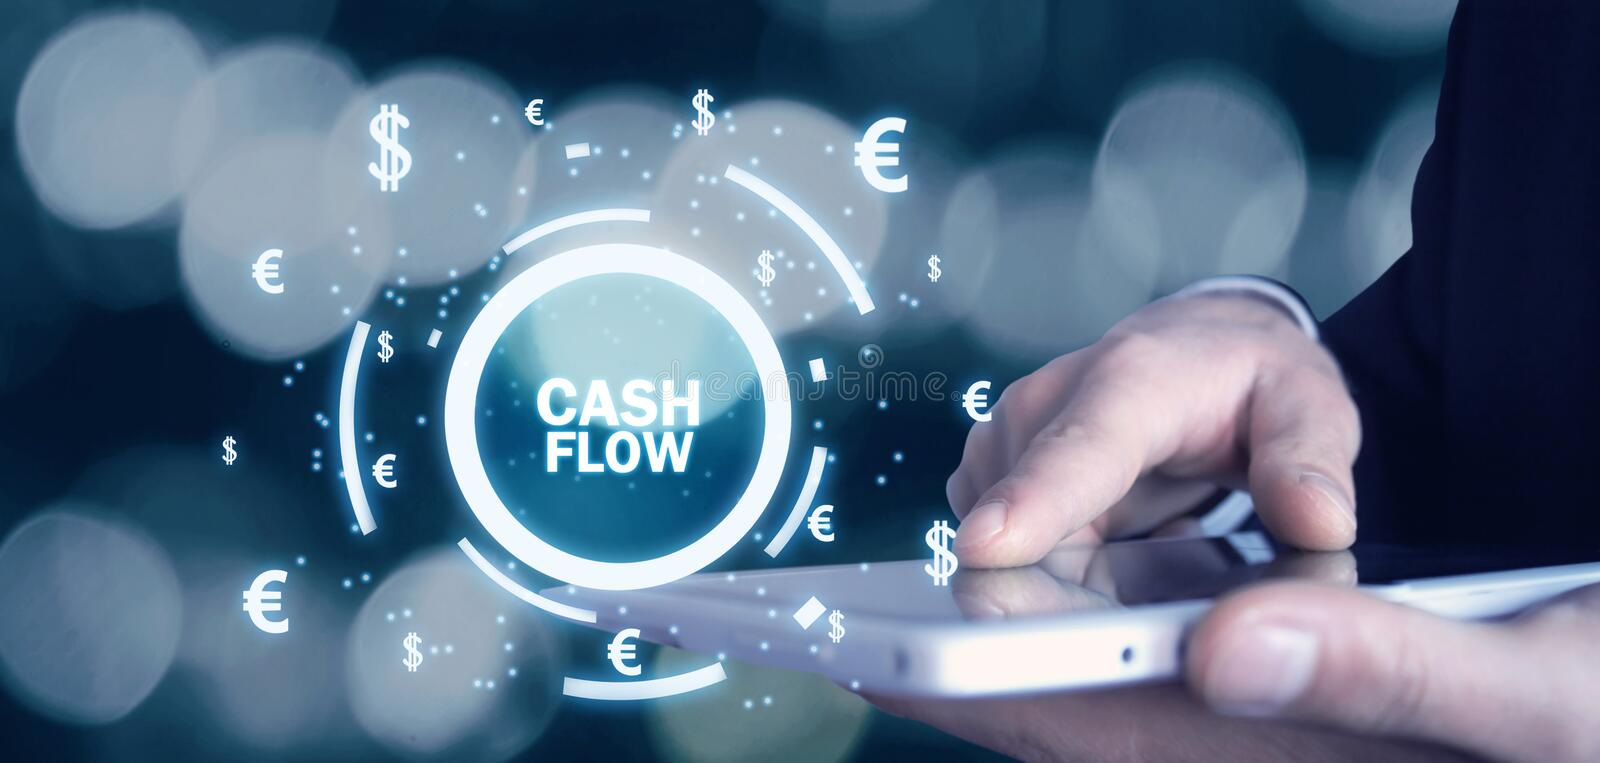 Man holding Cash Flow words with currency symbols. Finance concept stock image